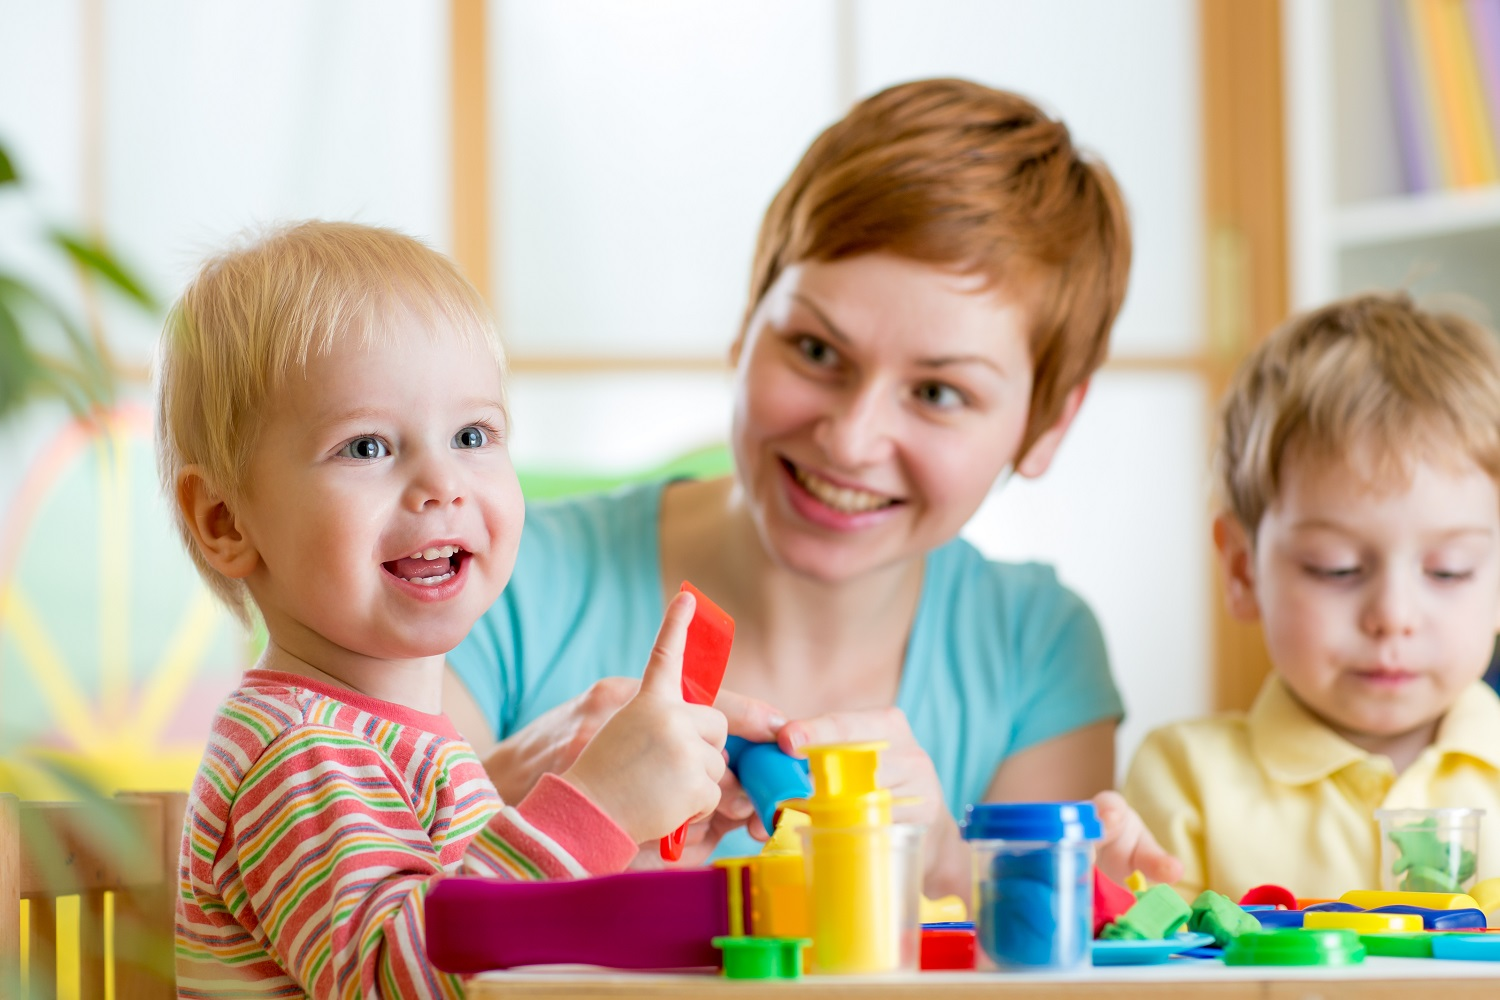 Woman with 2 young children playing with early years material